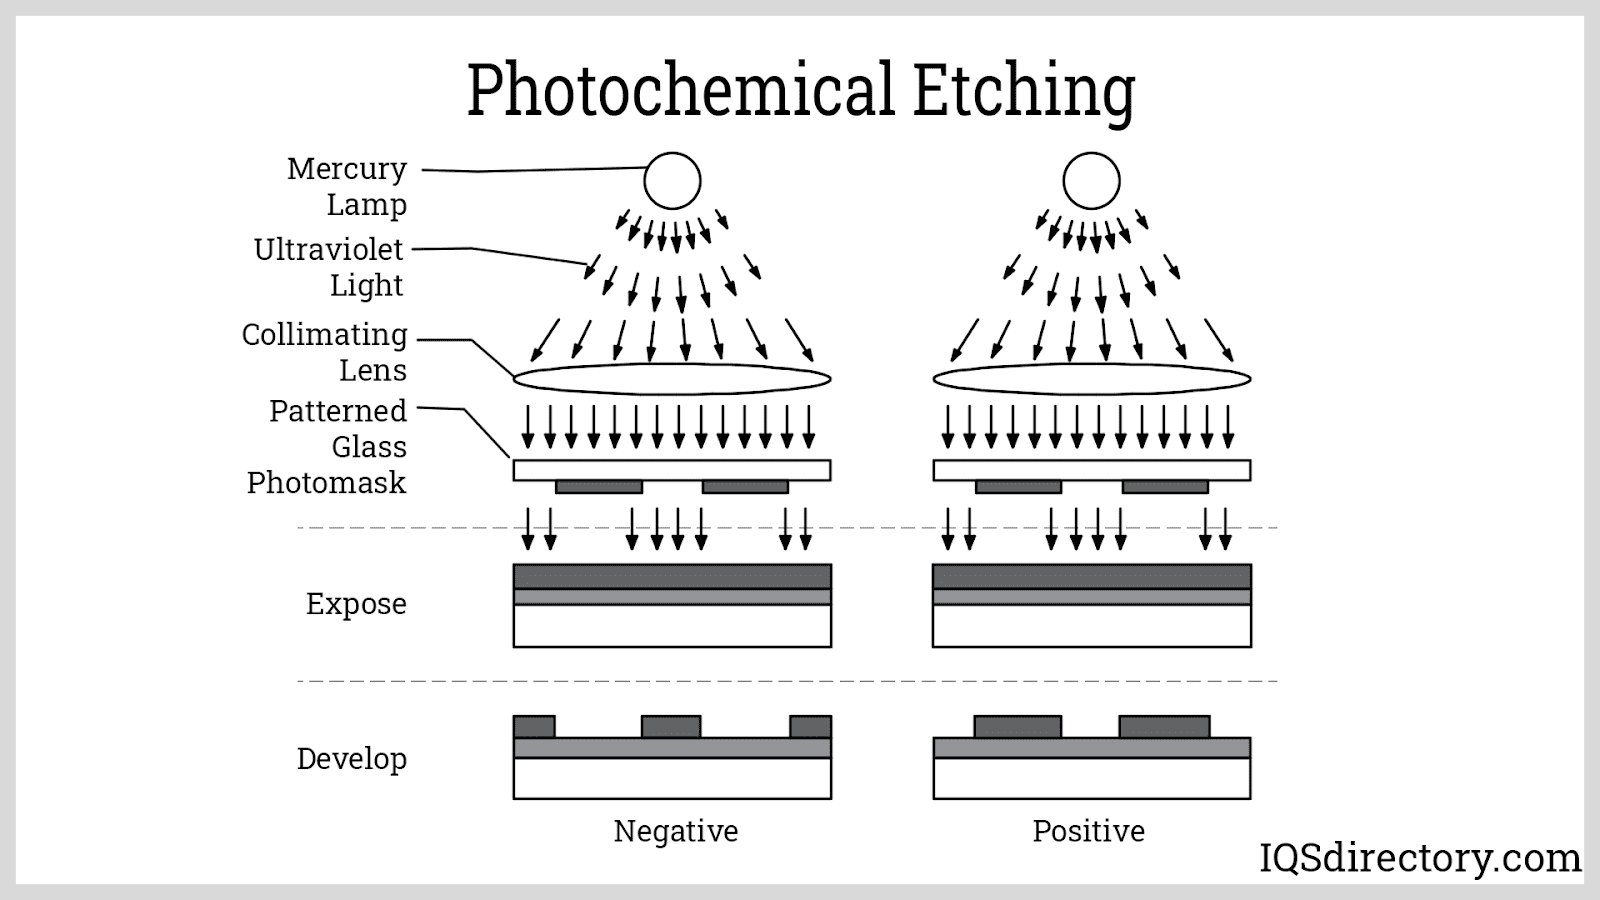 Photochemical Etching